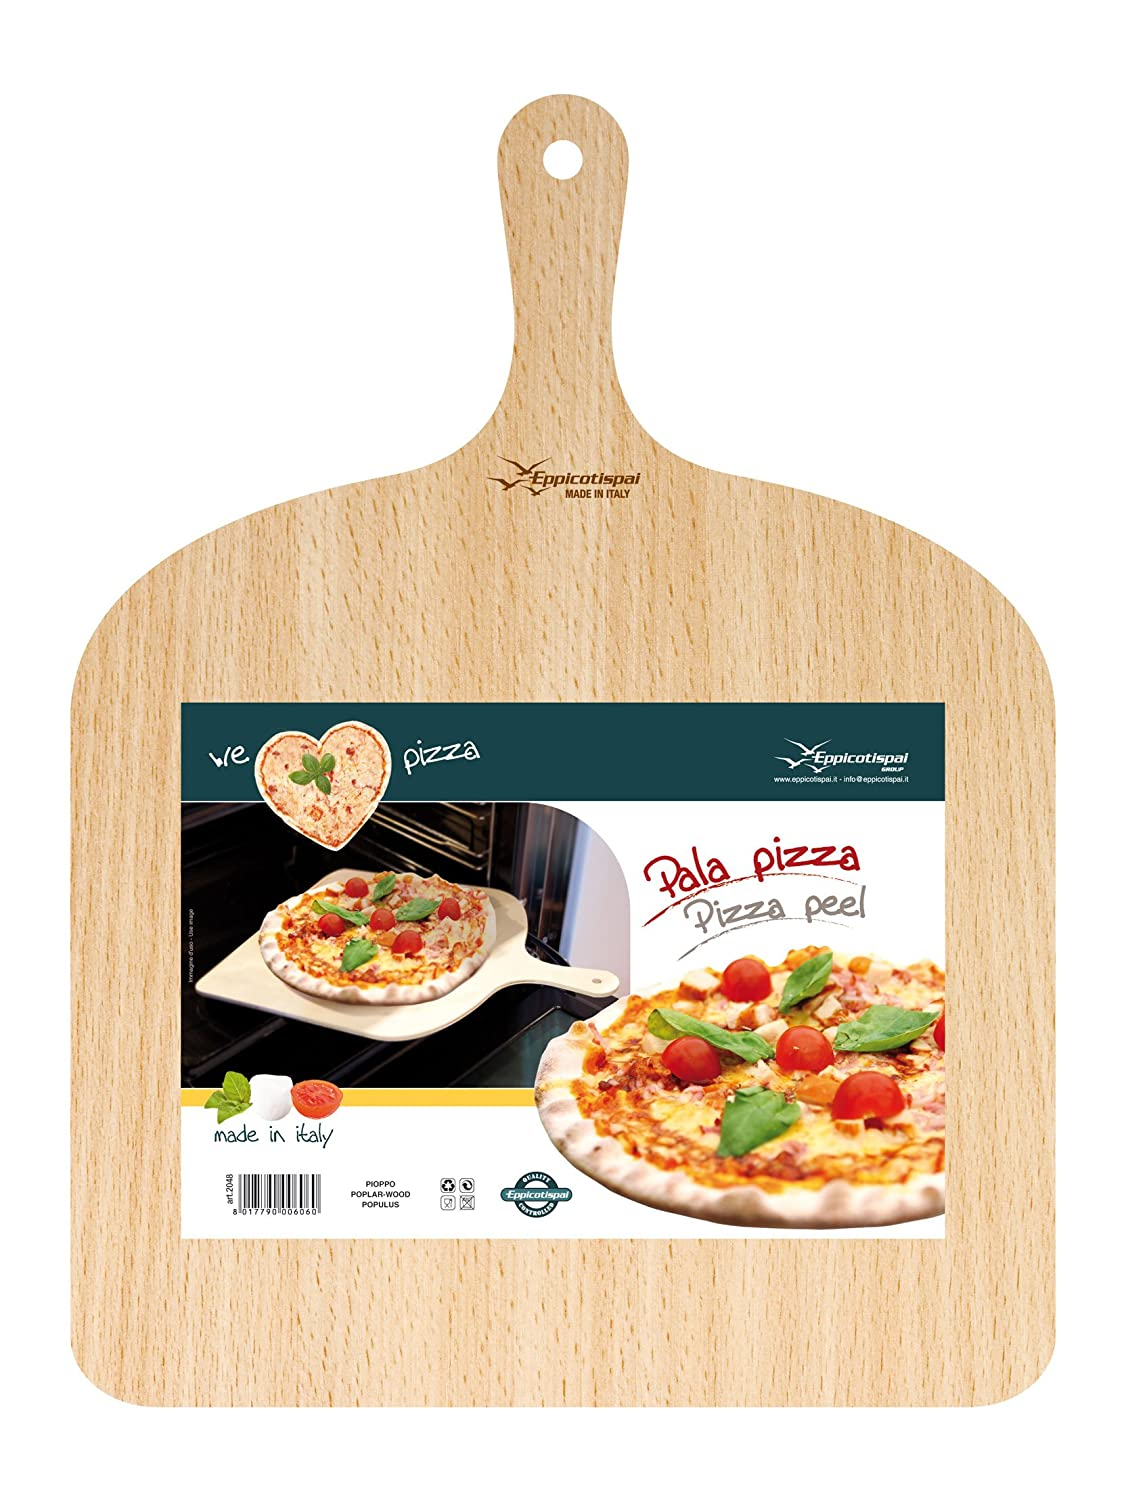 PALA PIZZA IN LEGNO DI BETULLA - Natural Beechwood Pizza Paddle/Peel We Love Pasta 2048